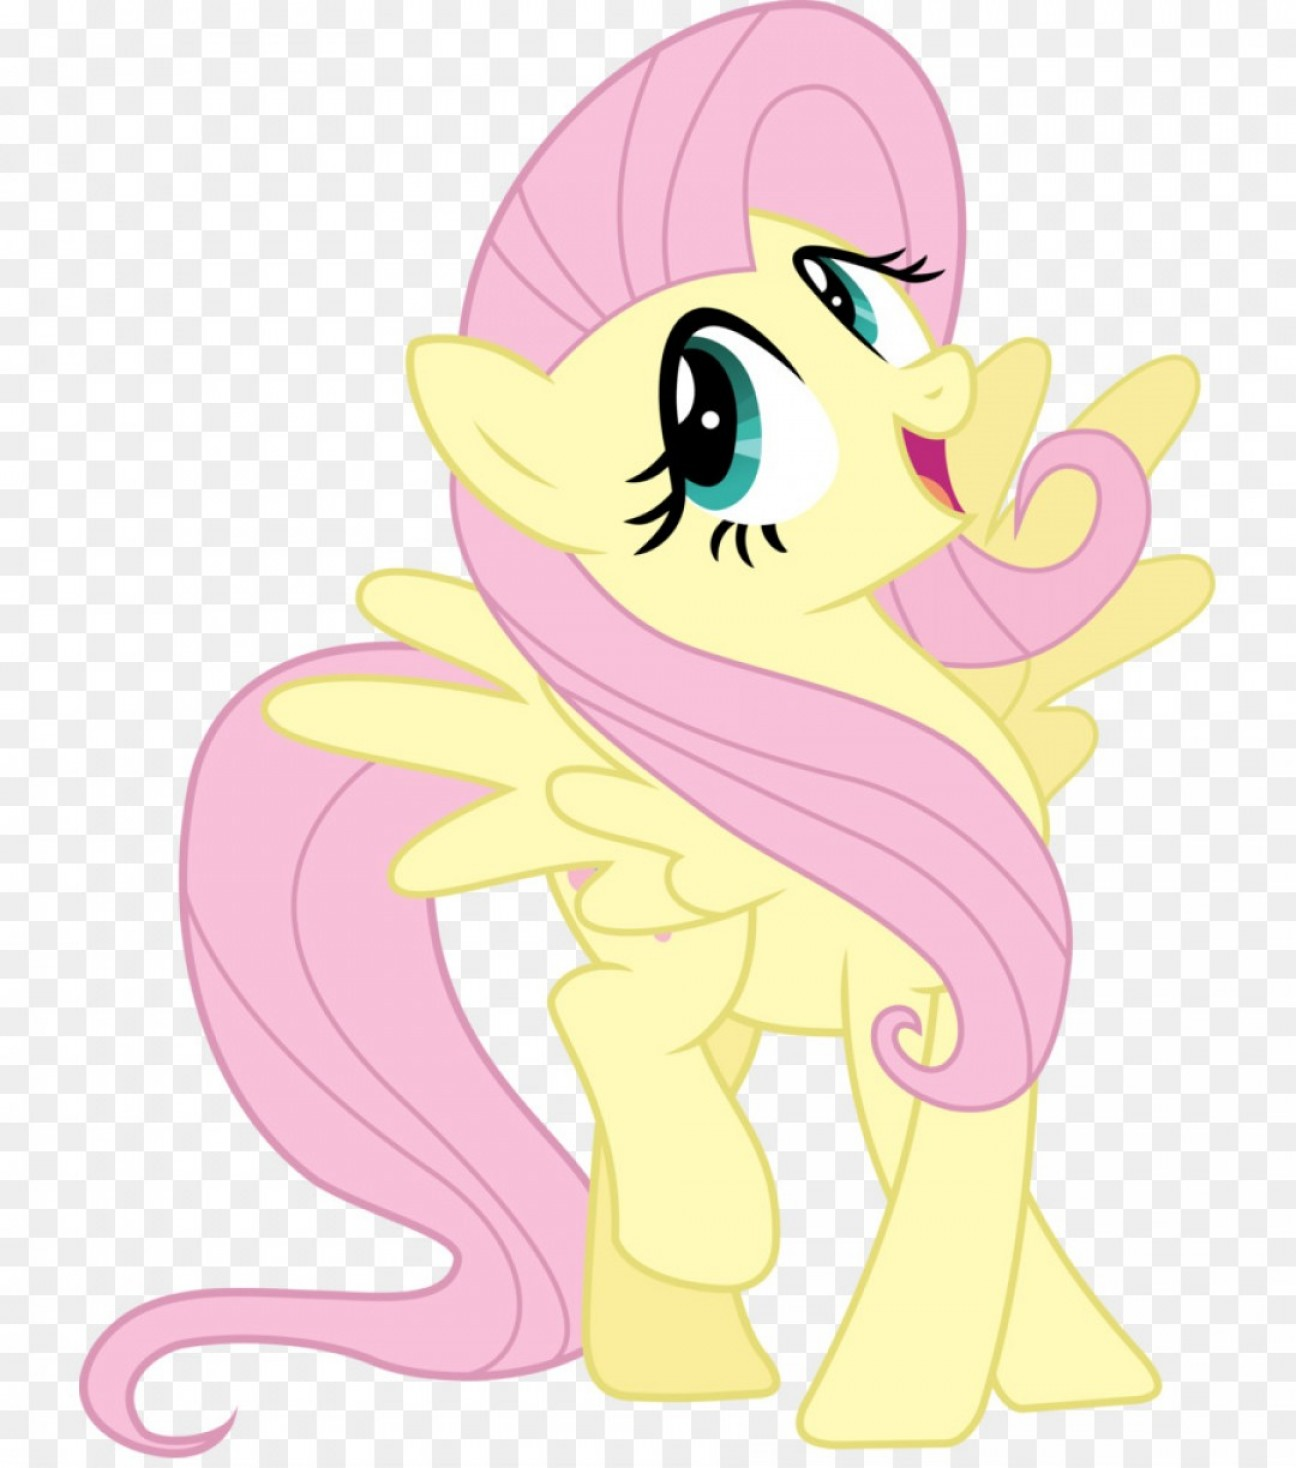 Derpy Hooves Vector: Png Fluttershy My Little Pony Derpy Hooves Caring Vect